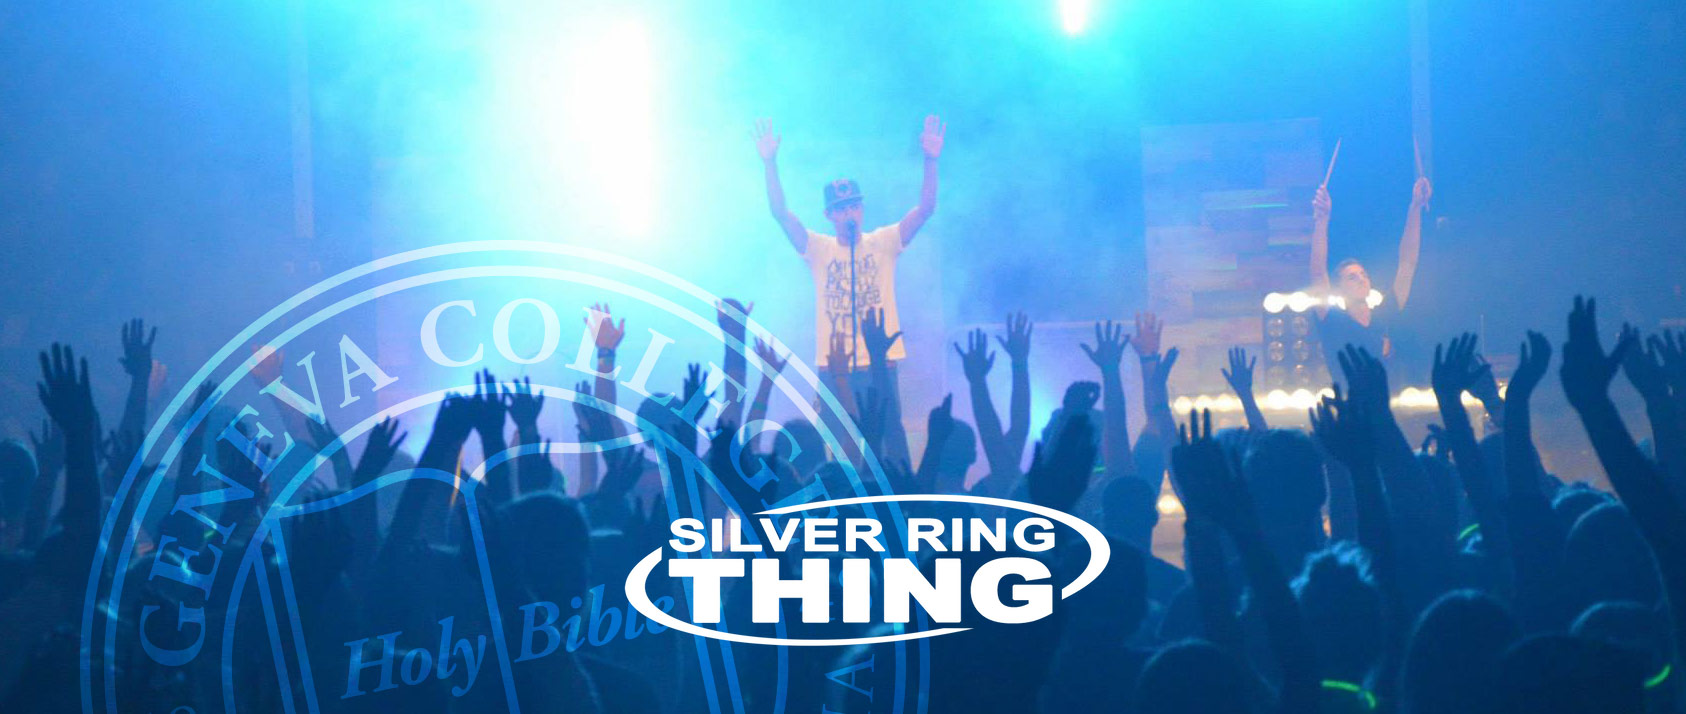 A white man wearing a fedora stands in from of a crowd of people with his hands in the air. At the bottom of the image it reads Silver Ring Thing.